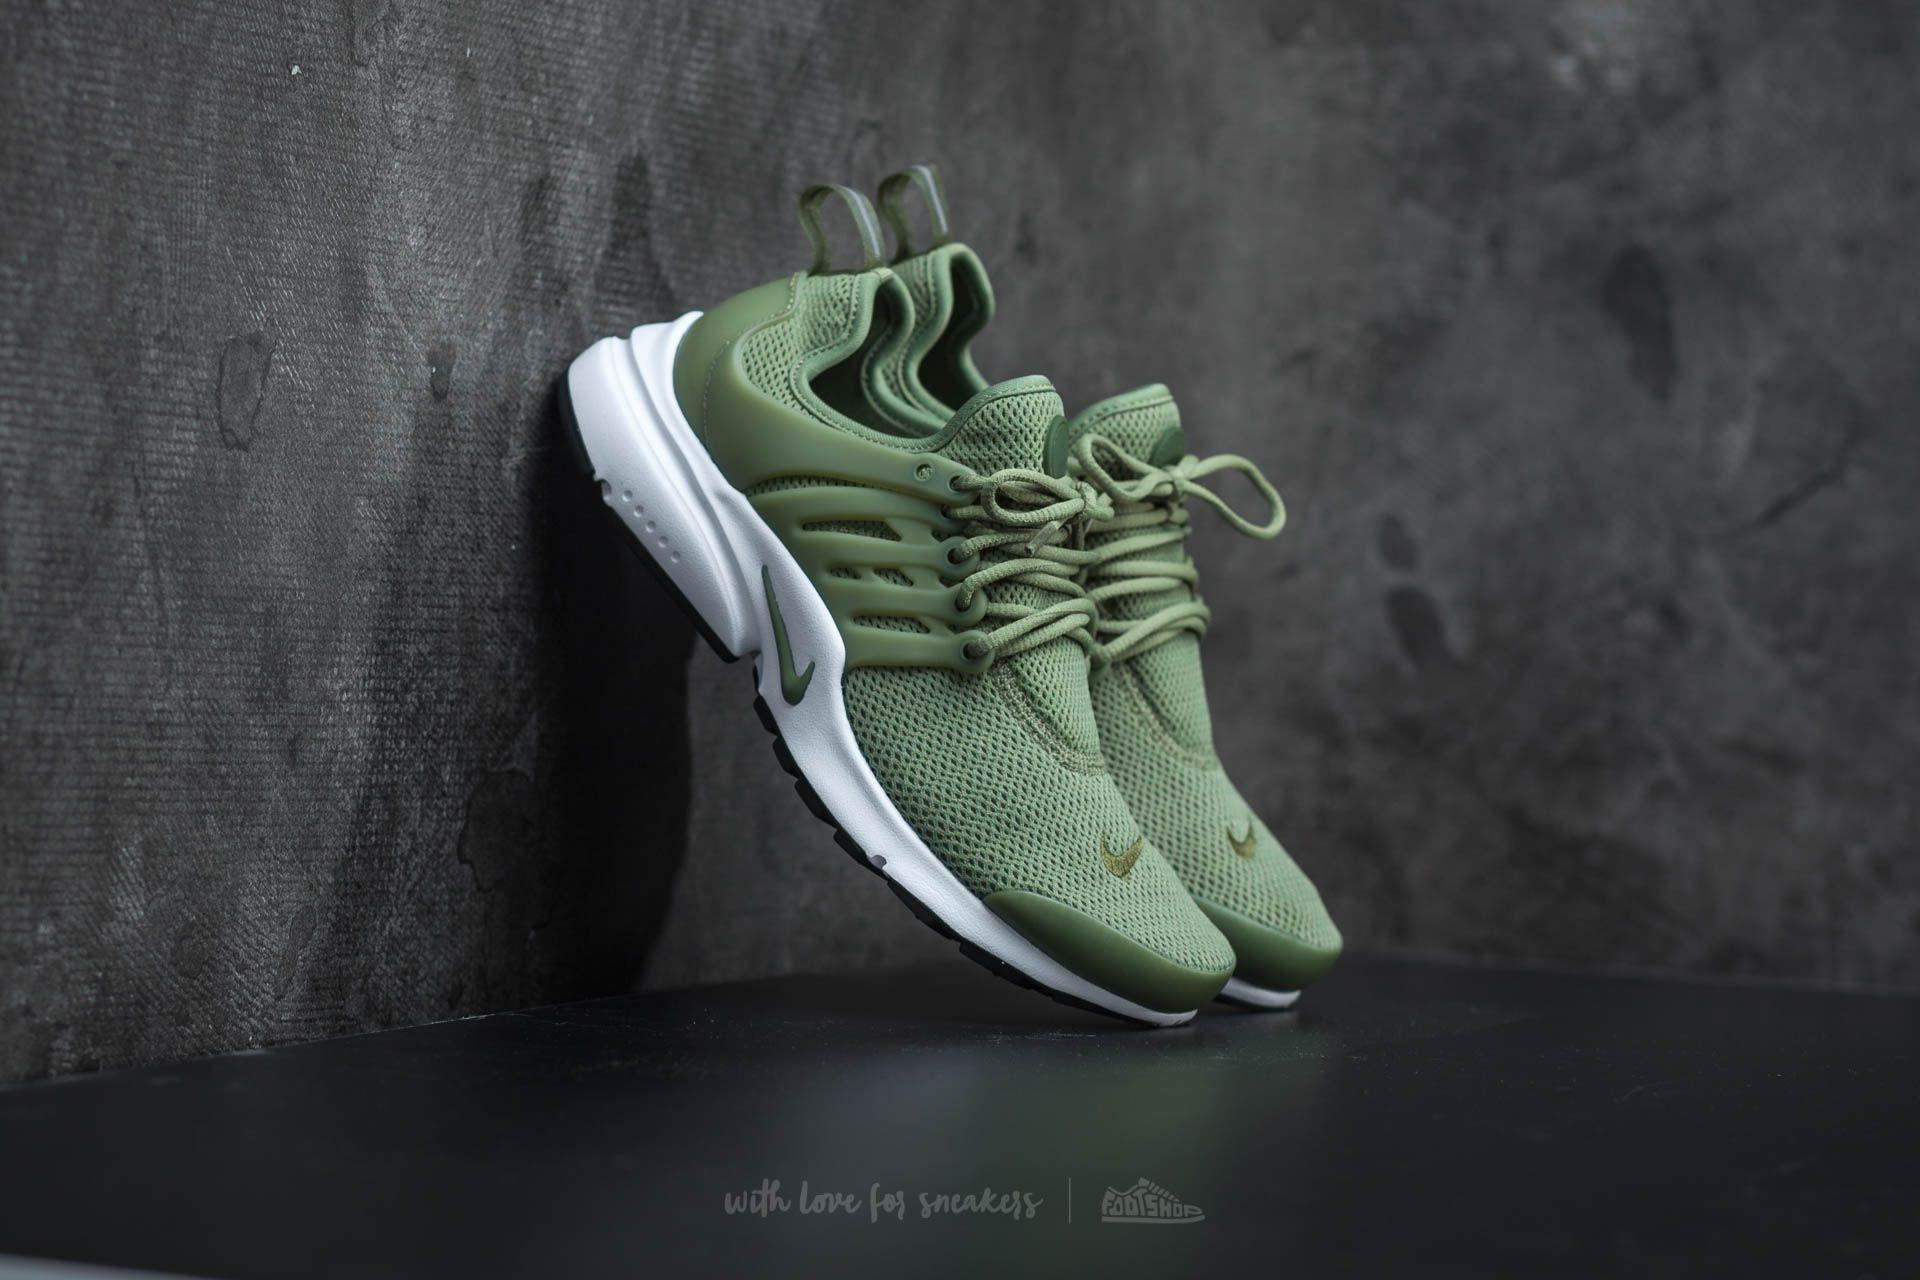 brand new 77a3b a5e38 ... Lyst - Nike W Air Presto Palm Green Palm Green in Green for Men ...